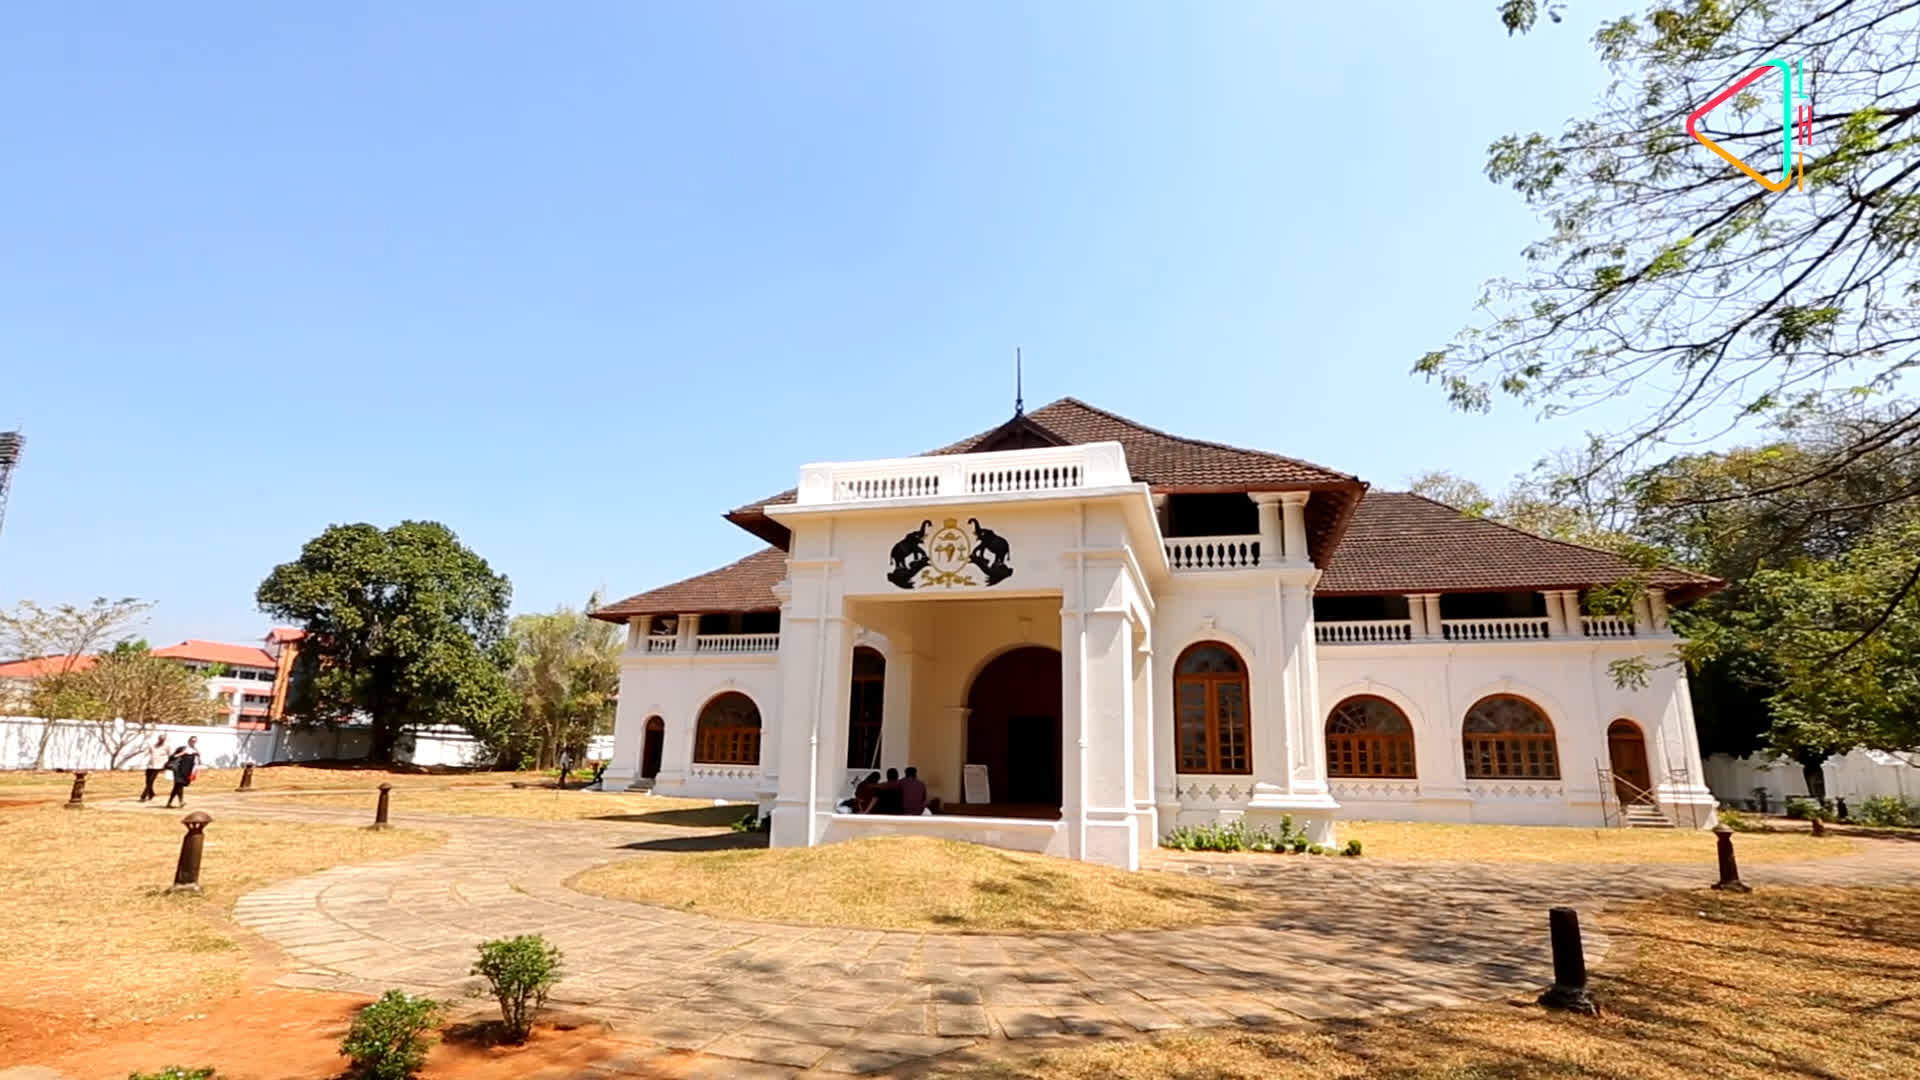 Thrissur's Palace & the Story it Tells